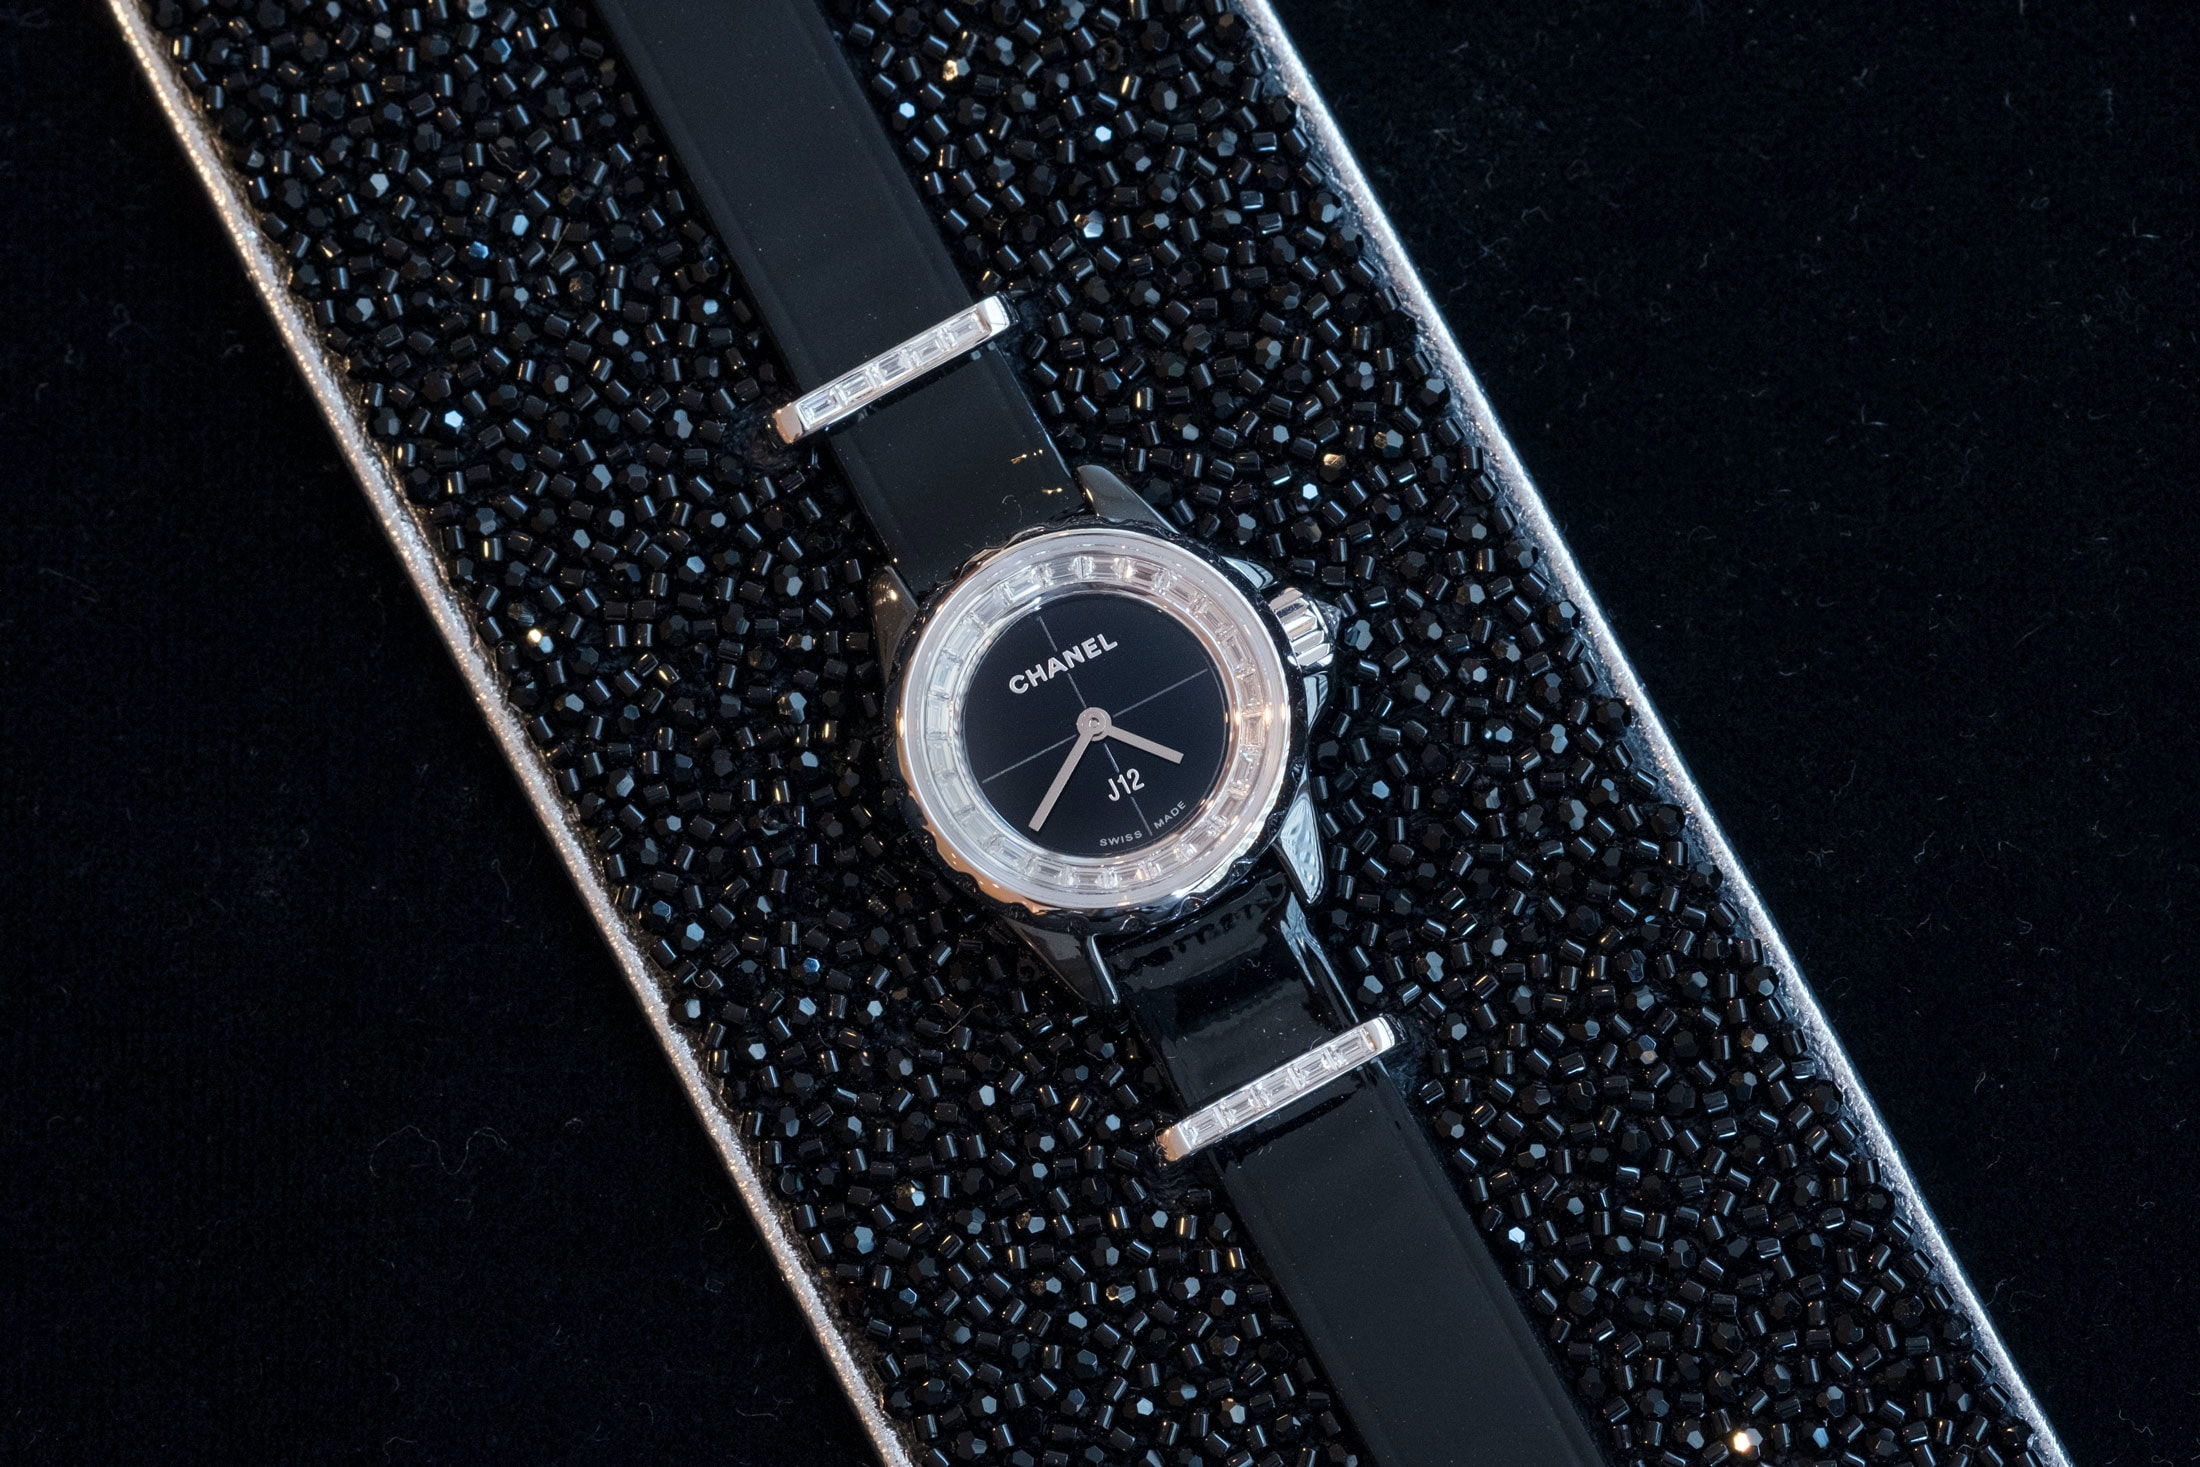 chanel j12 xs only watch  Auction Report: My Eleven Favorite Watches From Only Watch 2017 chanel